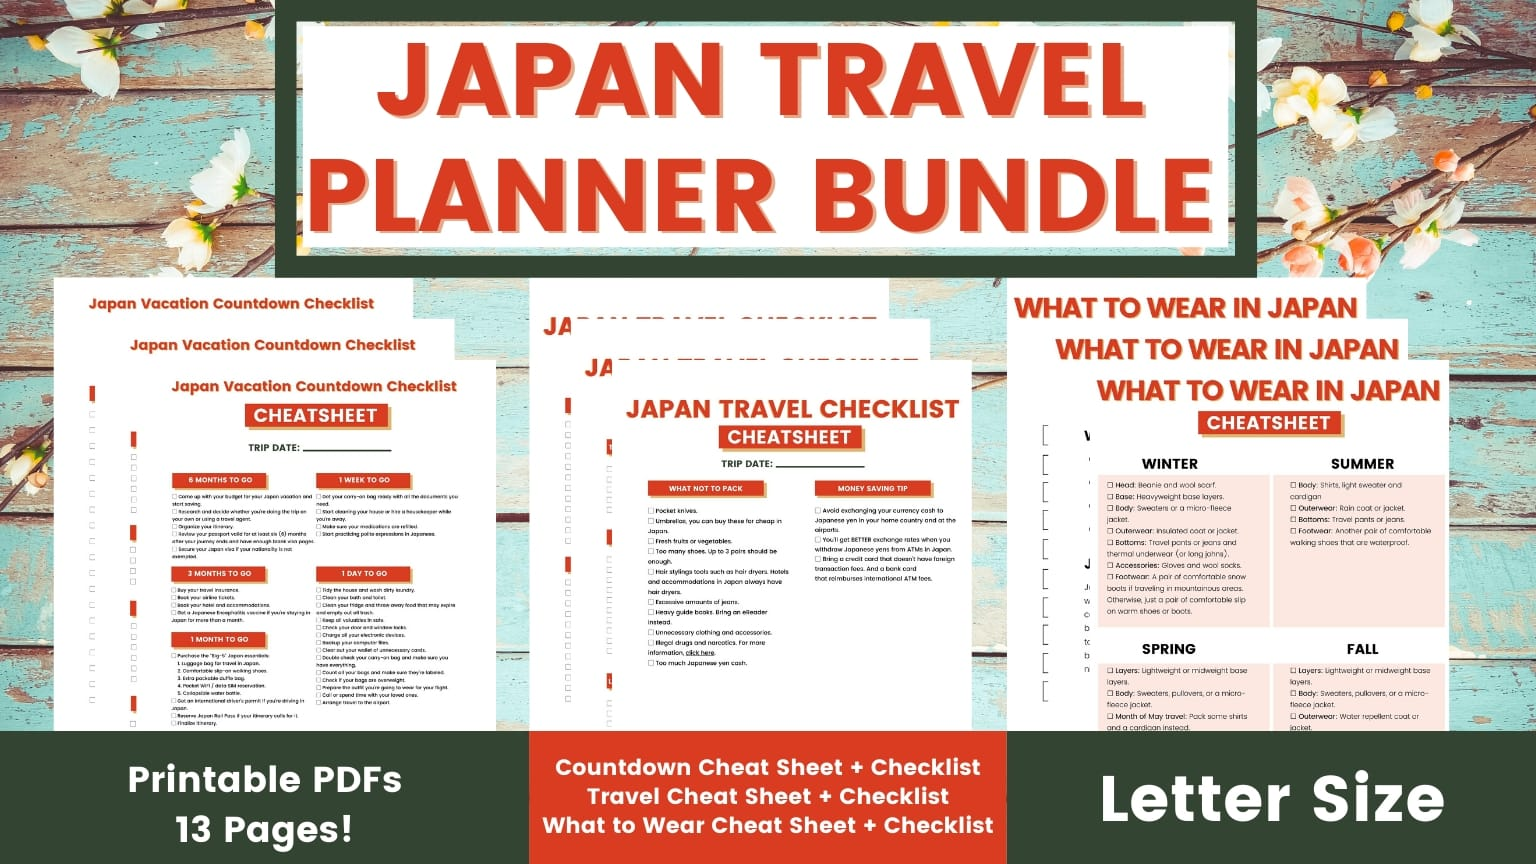 Japan Travel Planner Bundle